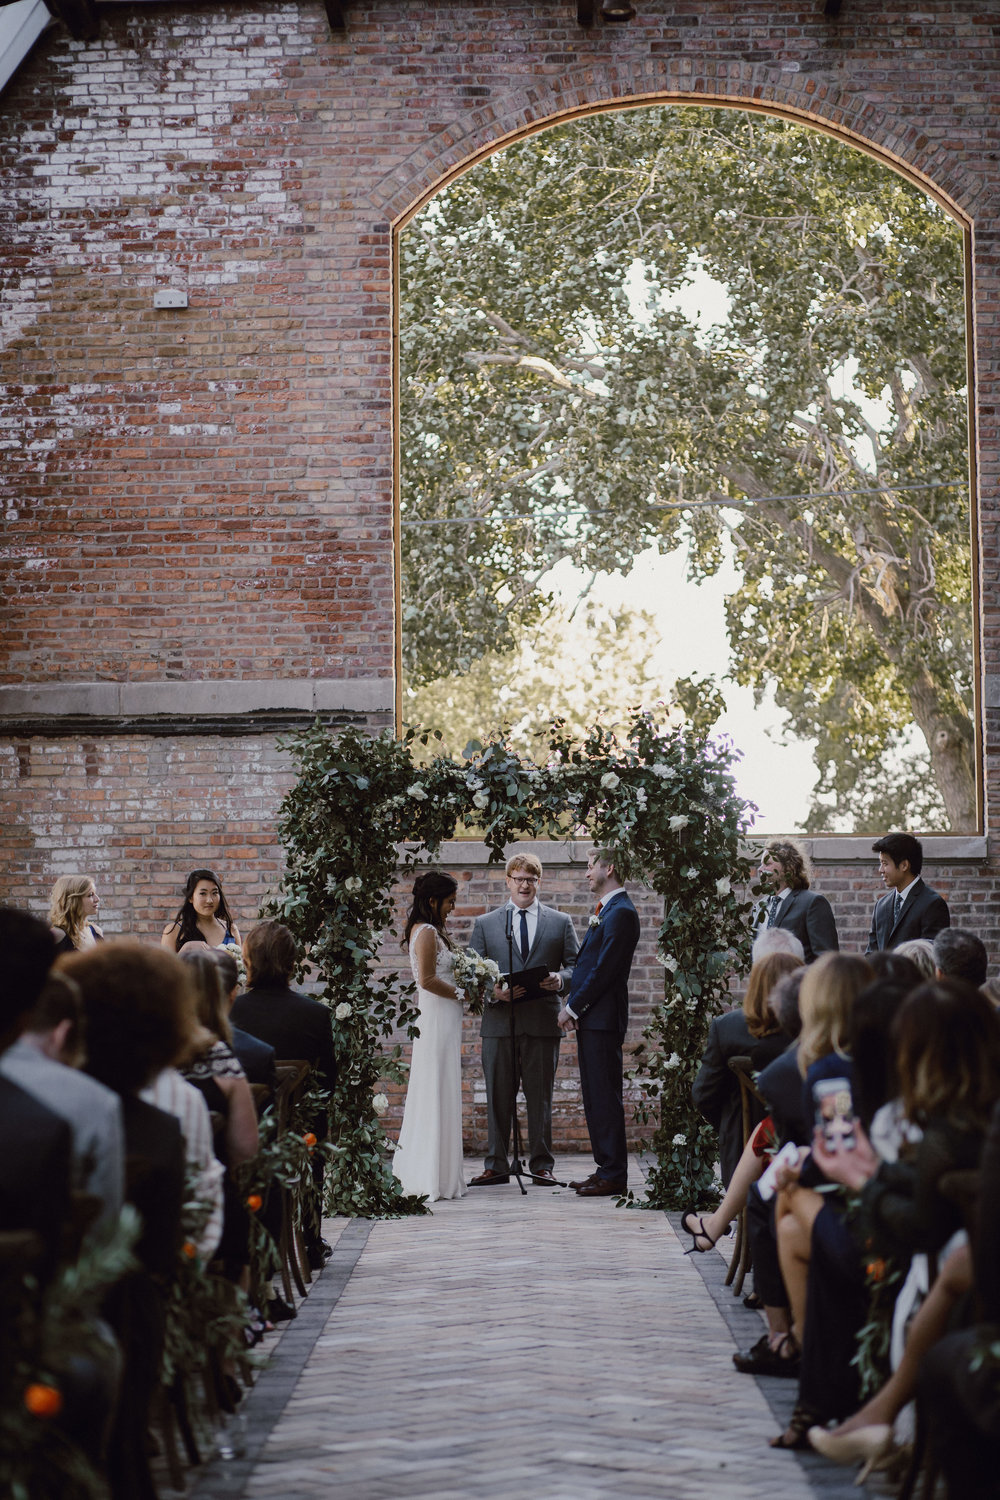 Bridgeport Art Center Wedding Ceremony, Flowers by Fleur Inc, Photo by Megan Saul Photography